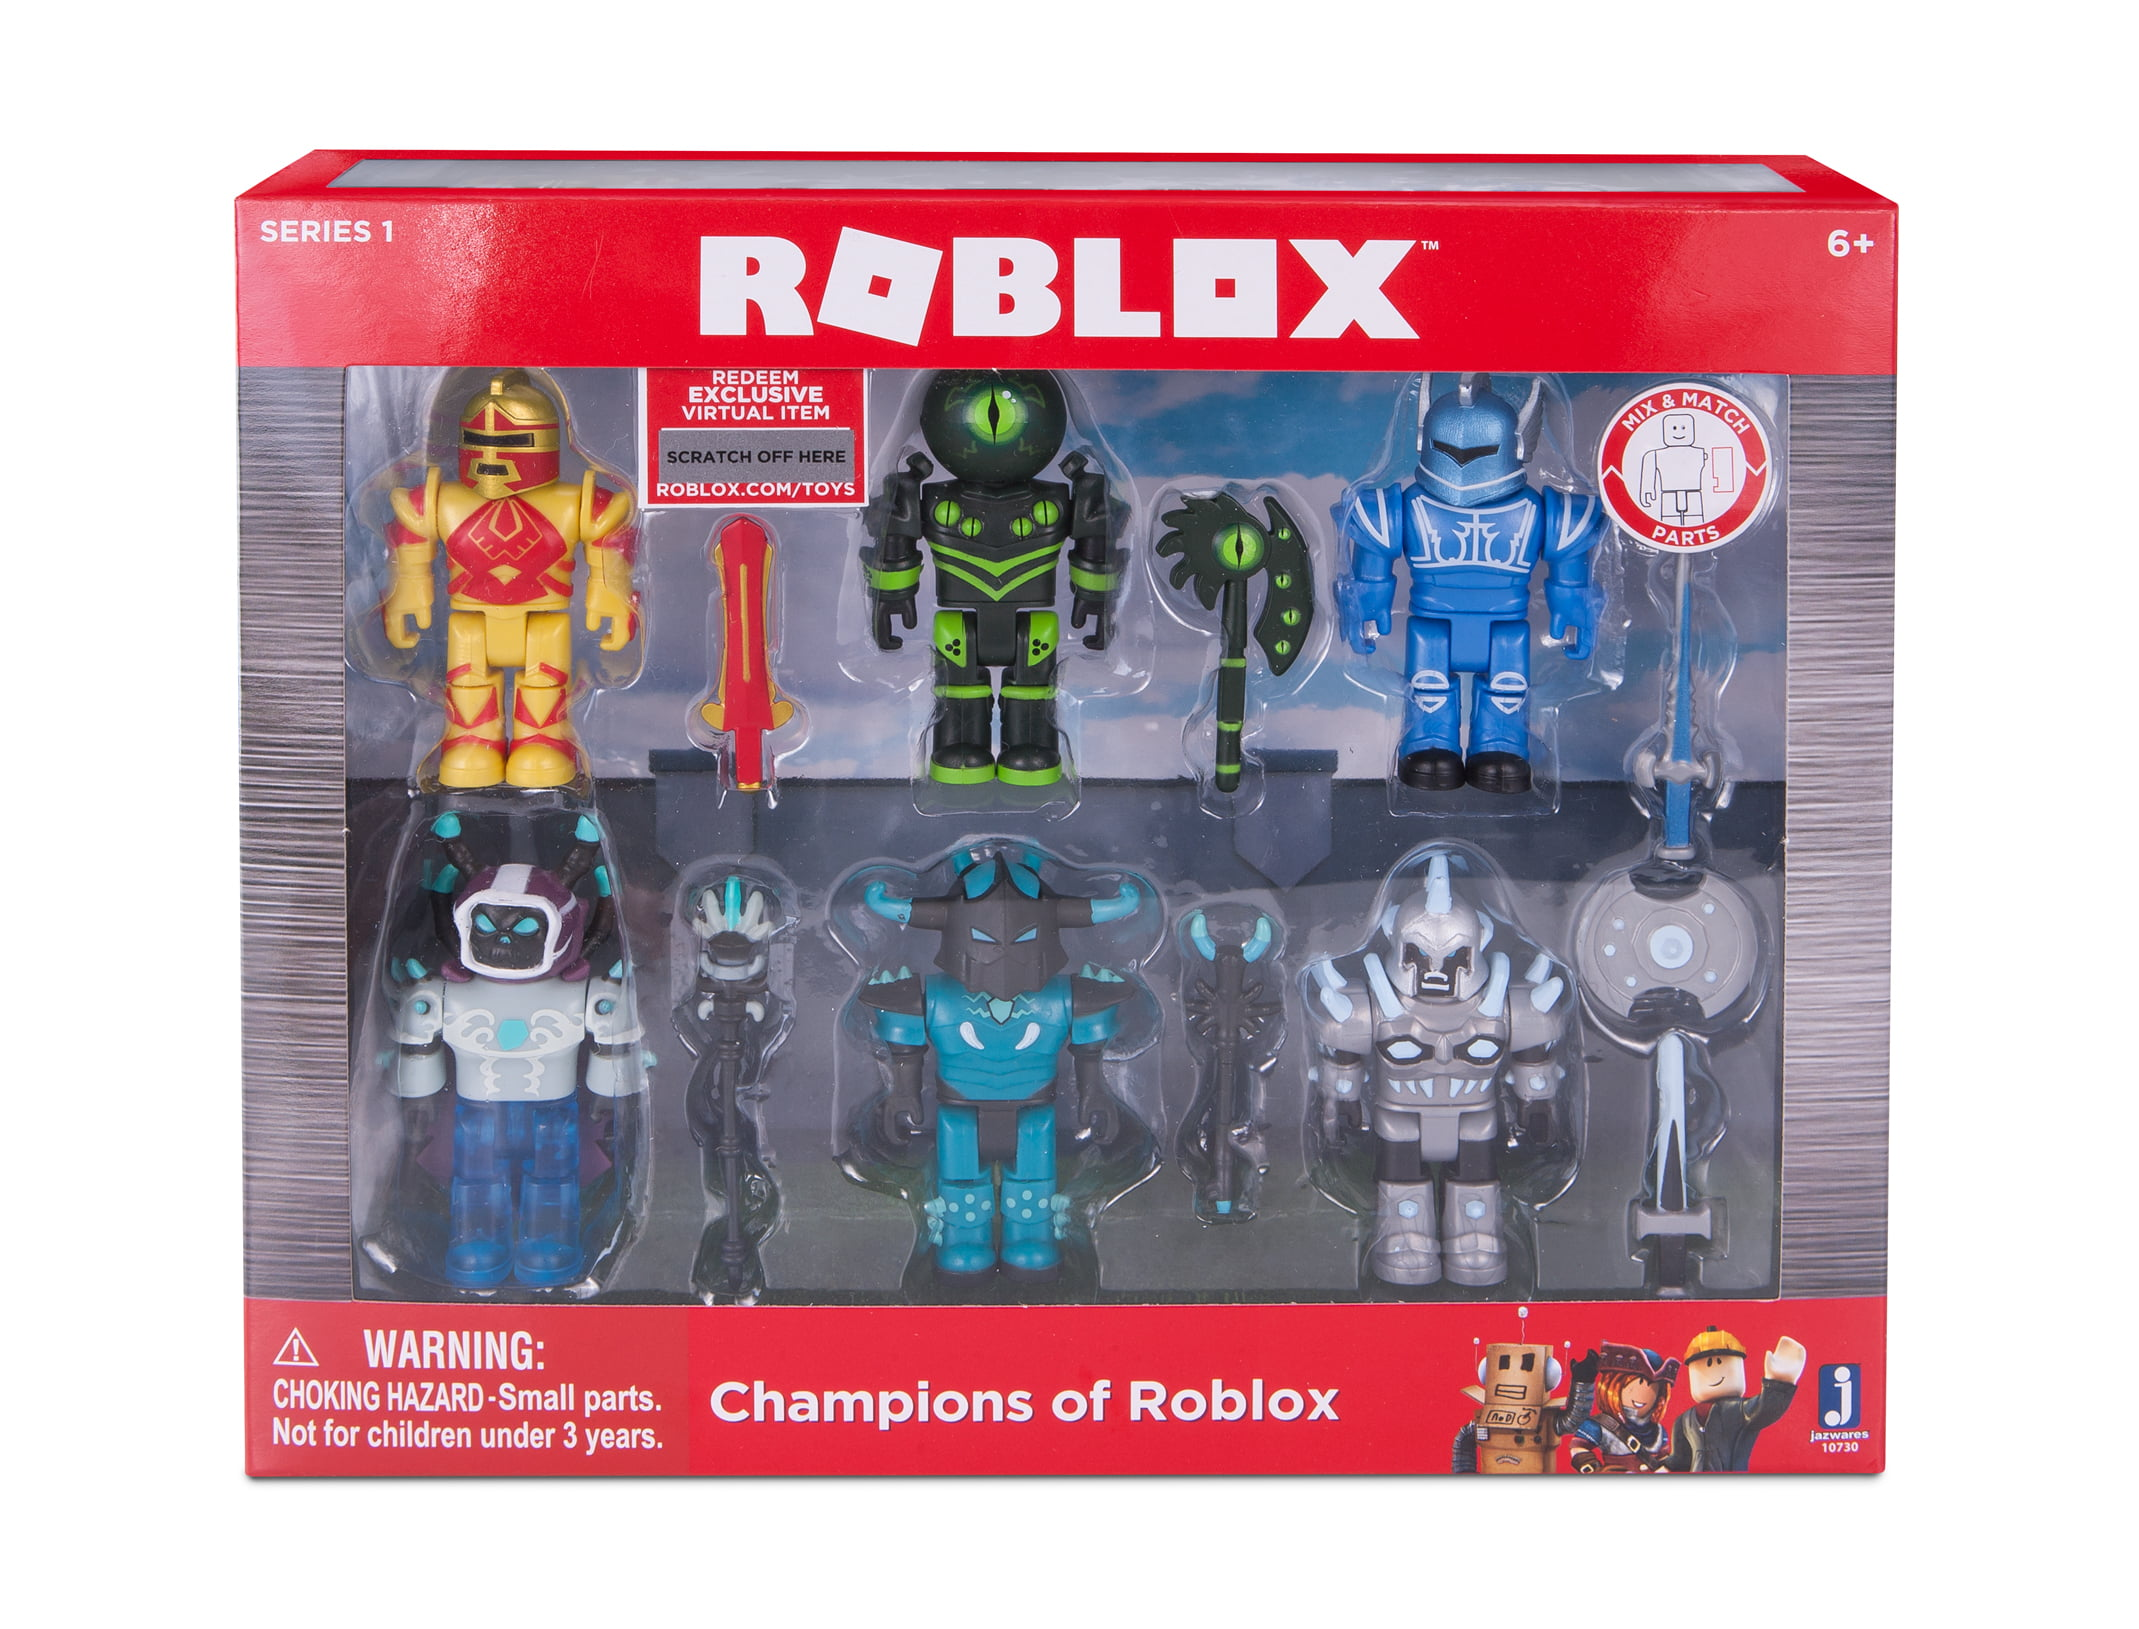 Roblox Champions Of Roblox Action Figure 6 Pack Brand New Toys Roblox Action Collection Champions Of Roblox Six Figure Pack Includes Exclusive Virtual Item Walmart Com Walmart Com